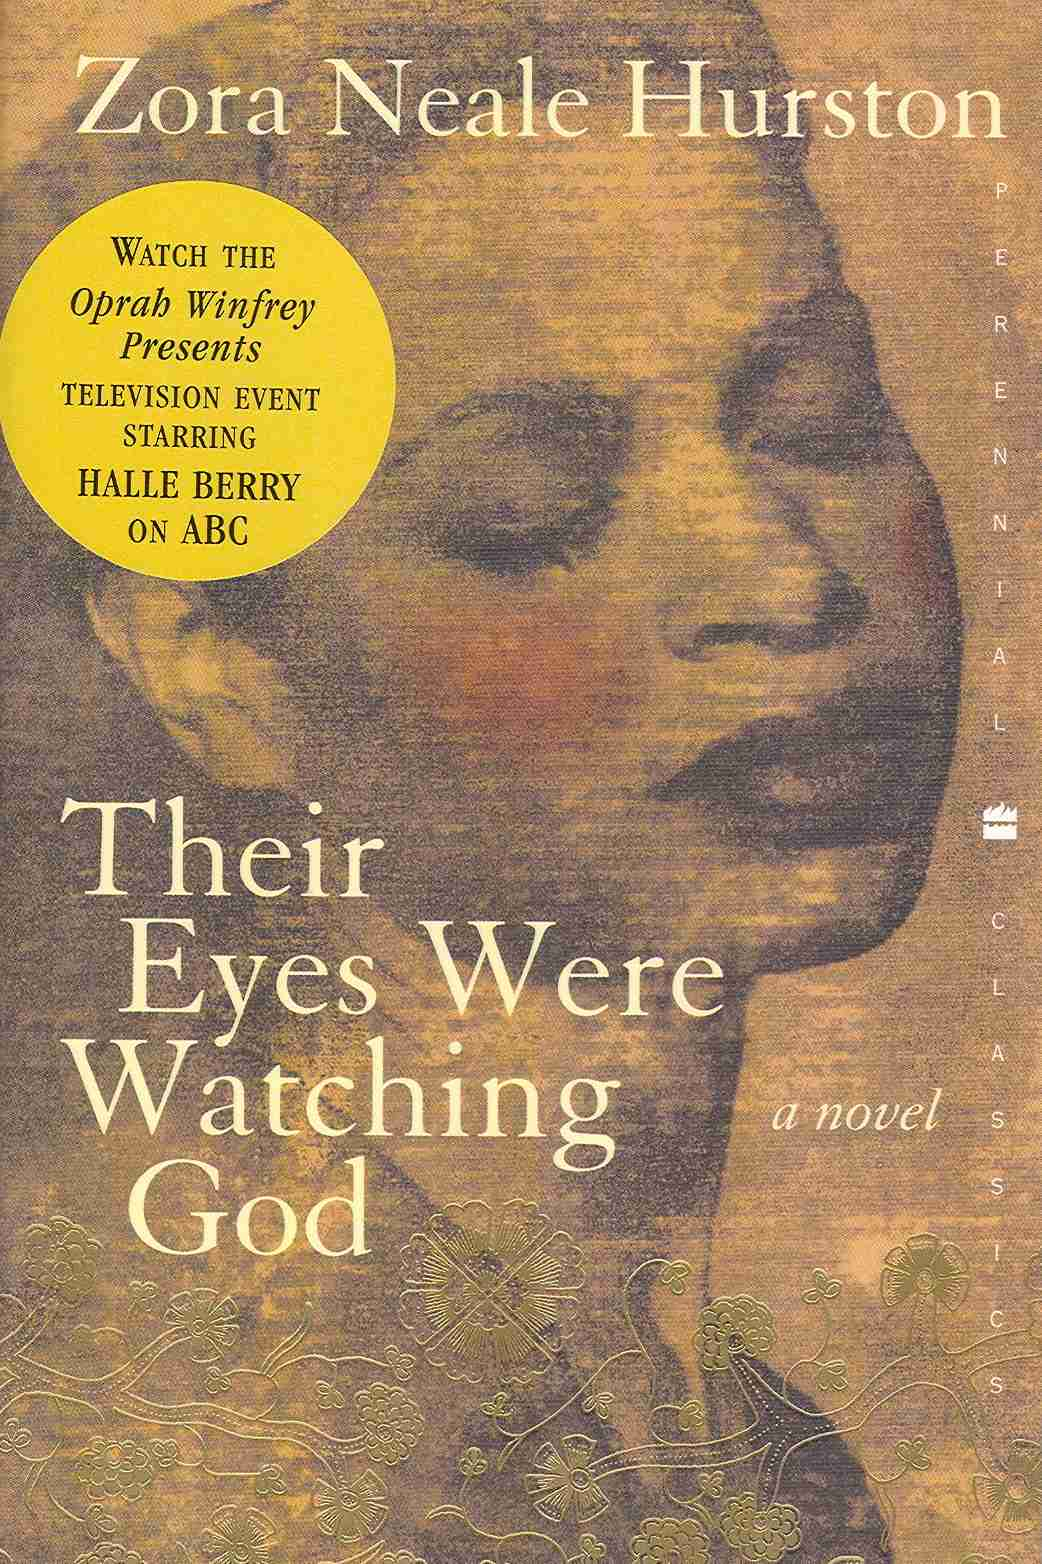 The imagery of creation myths in their eyes were watching god a novel by zora neale hurston